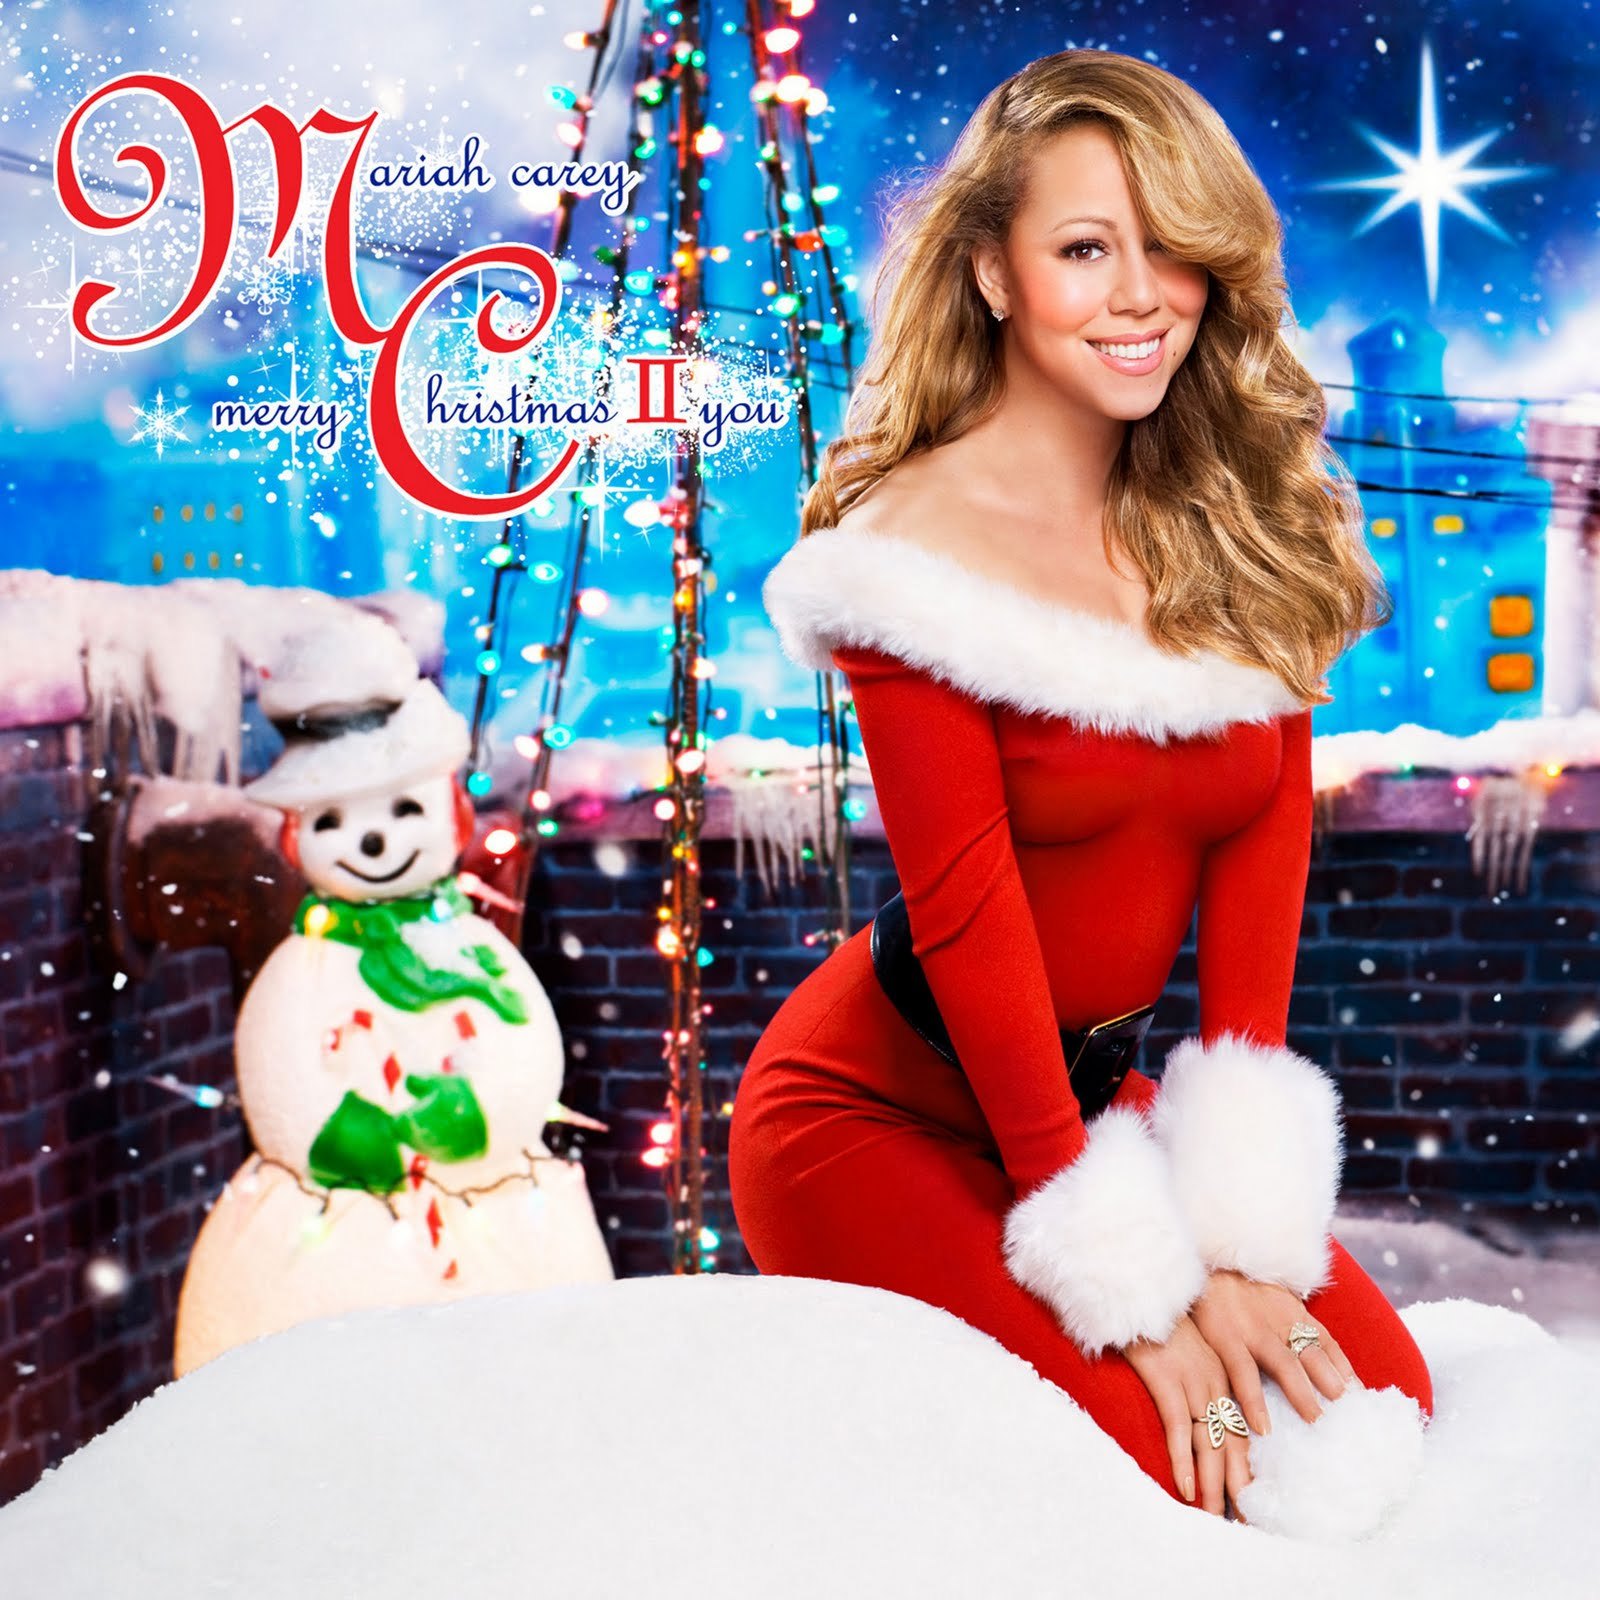 Mariah Carey Christmas Memes.Fresh Fab Celebrity News And Gossip Just The Way You